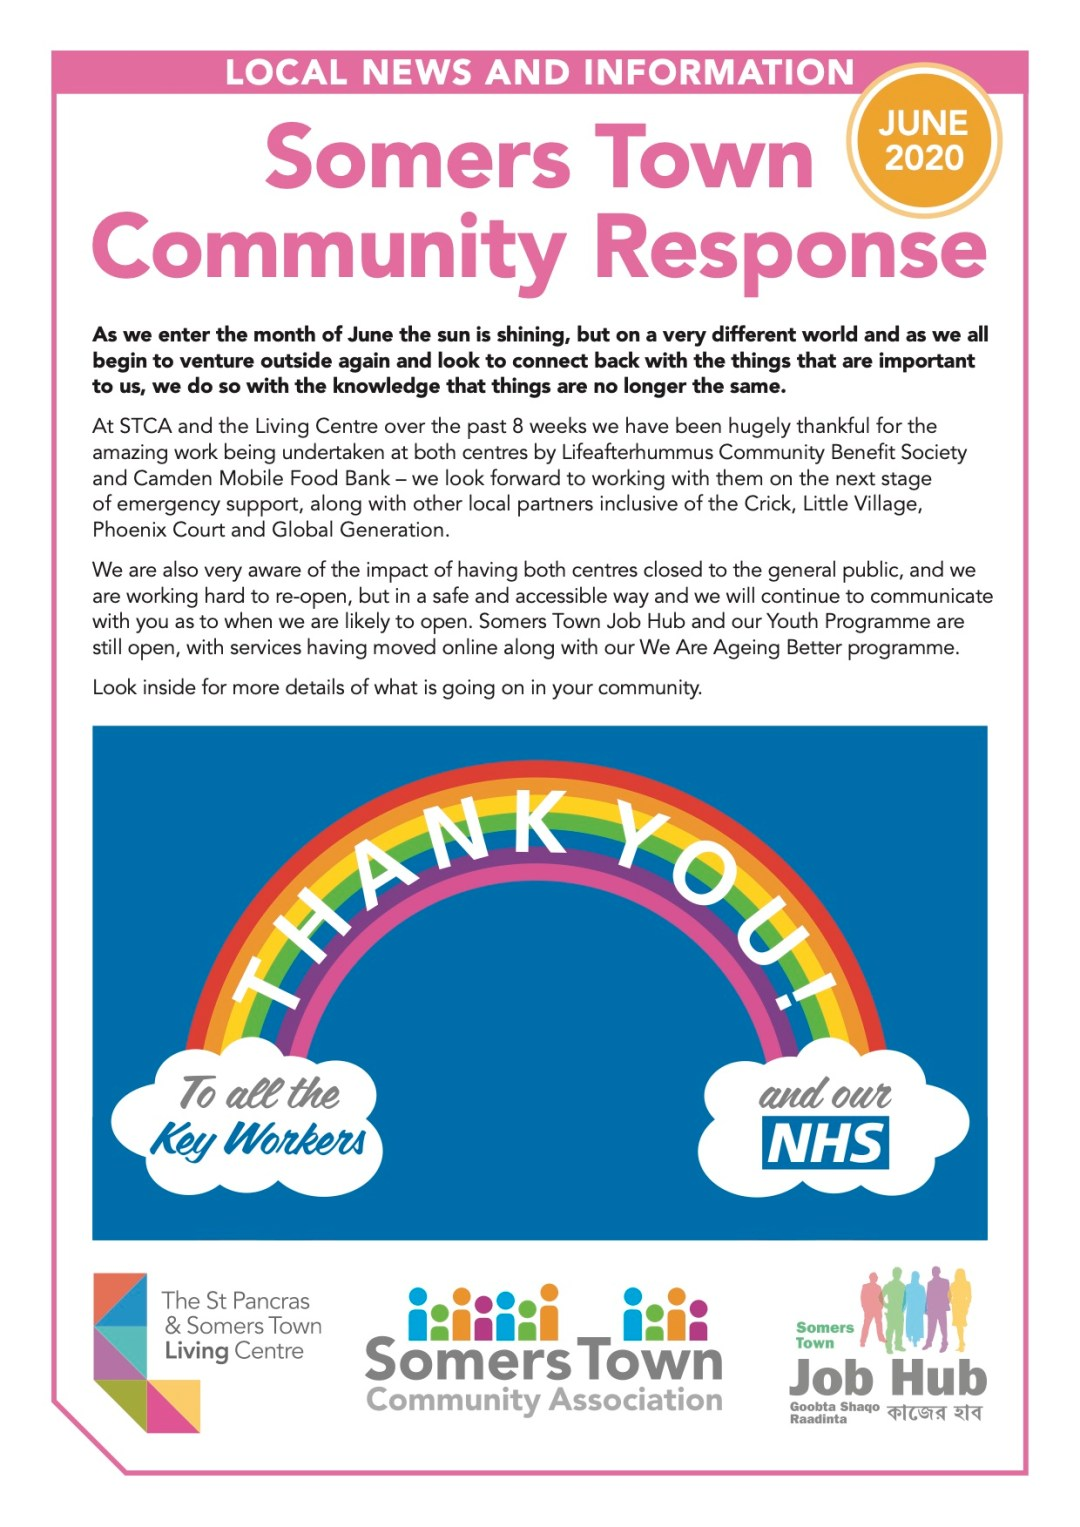 Somers Town Community Response June 2020